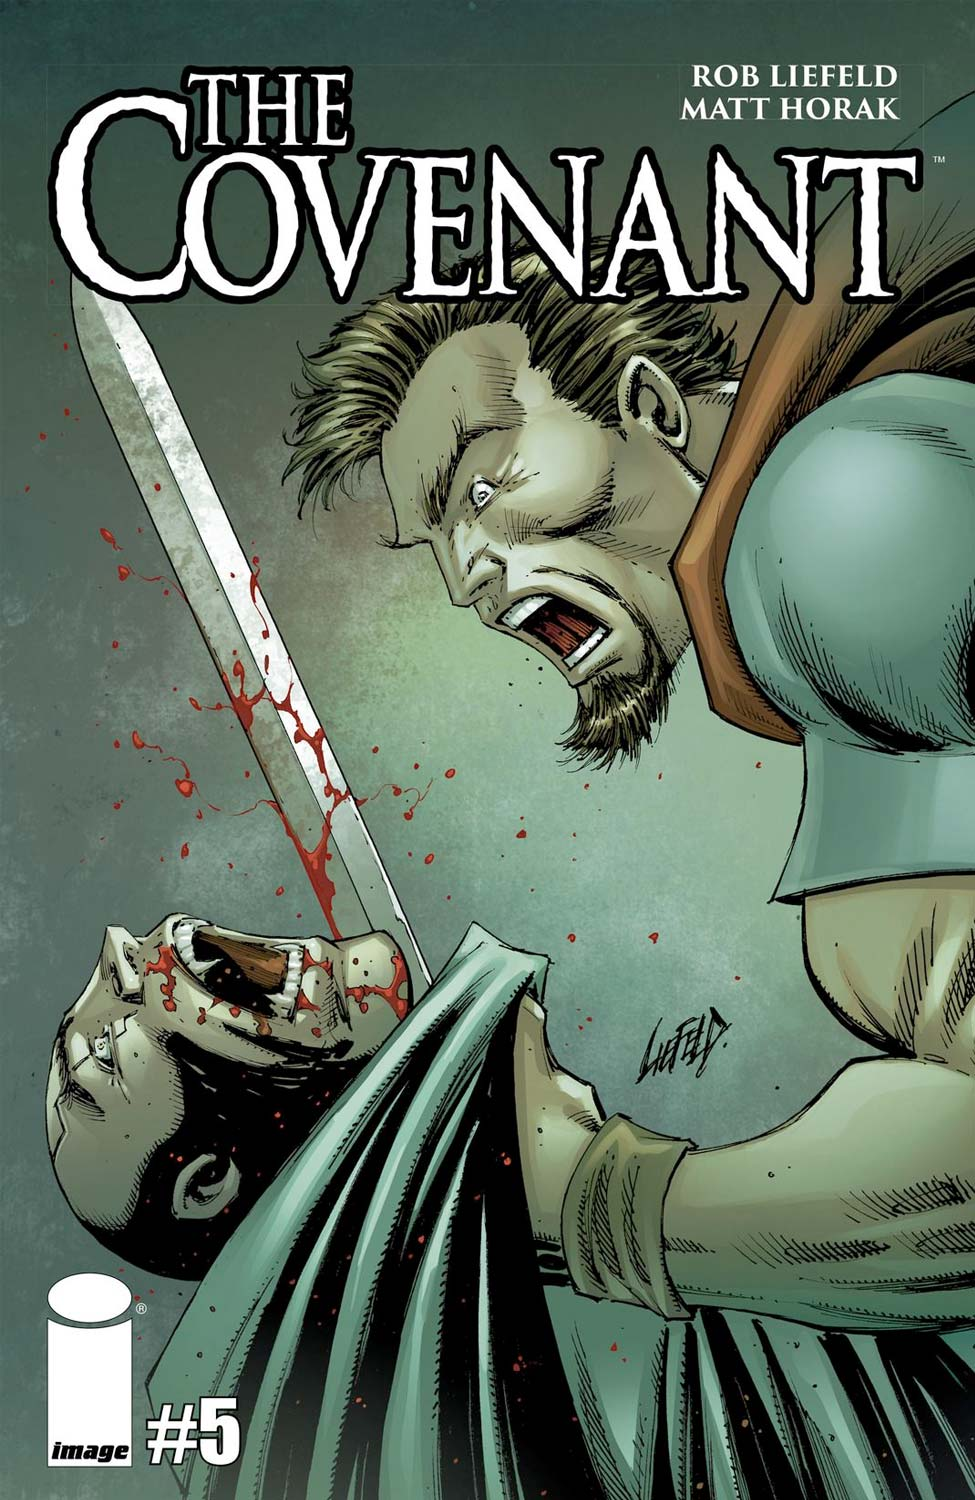 The Covenant #5